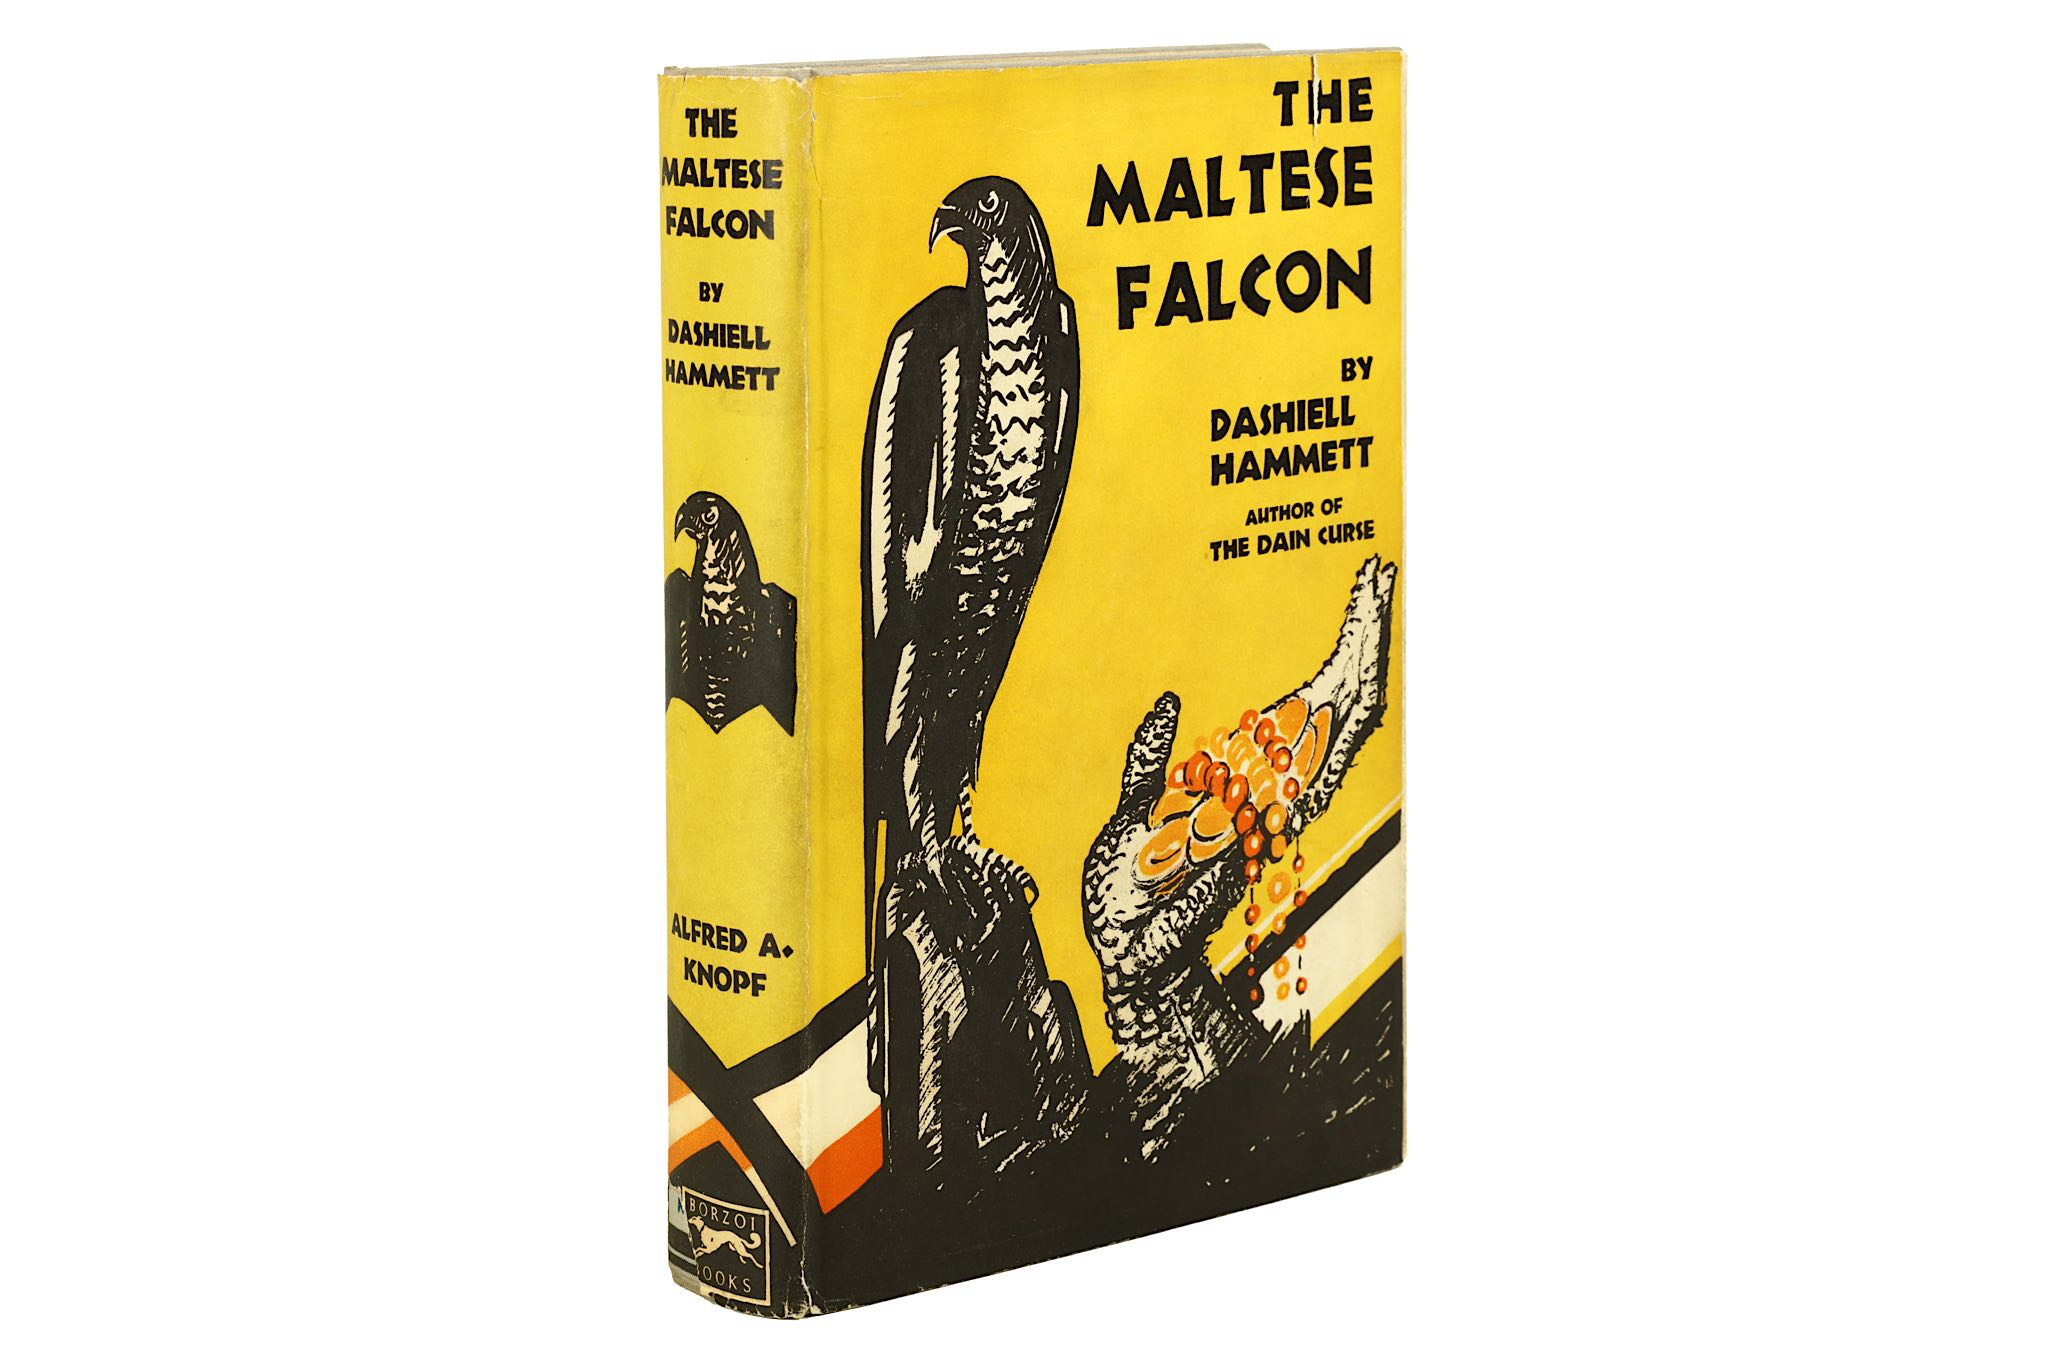 Lot 40 - Hammett (Dashiell) The Maltese Falcon, FIRST EDITION, original decorated cloth, top edge stained